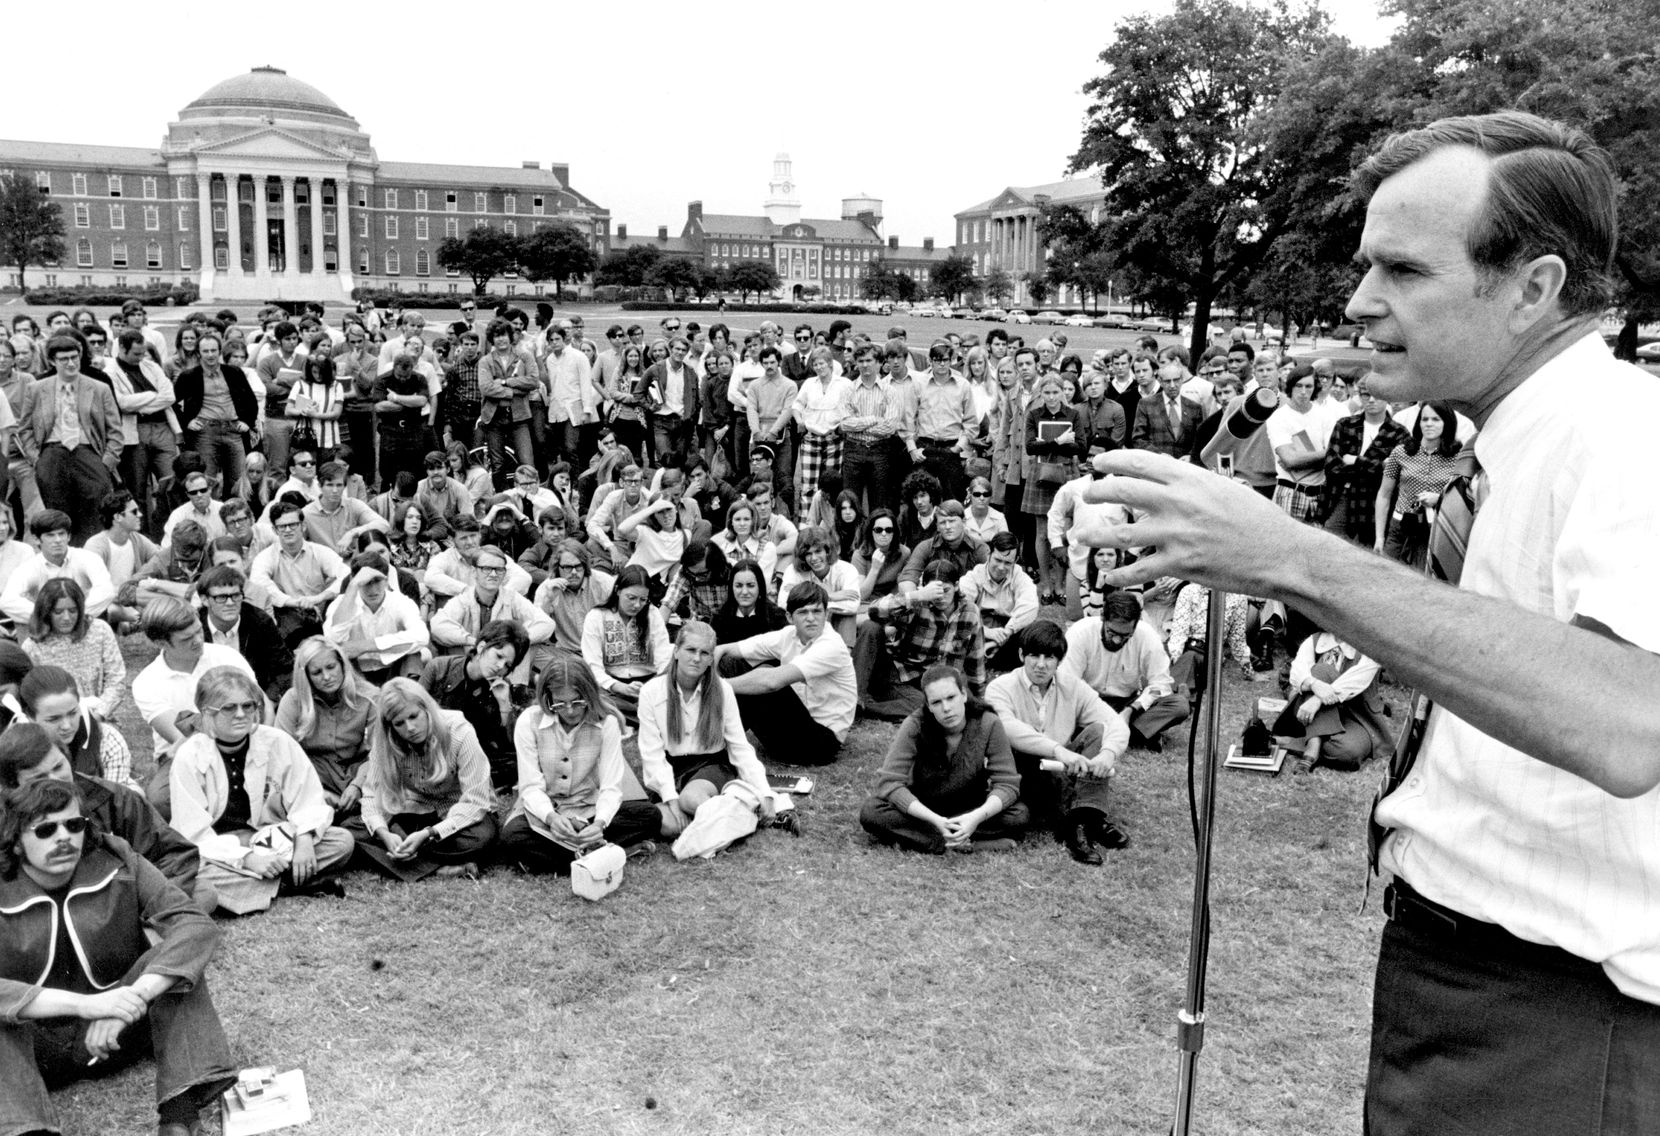 1970: U.S. Congressman George Bush speaks to students on the SMU campus during his run for a Republican Senate seat, a race that he lost. Bush was a U.S. congressman from Texas from 1966 to 1970.